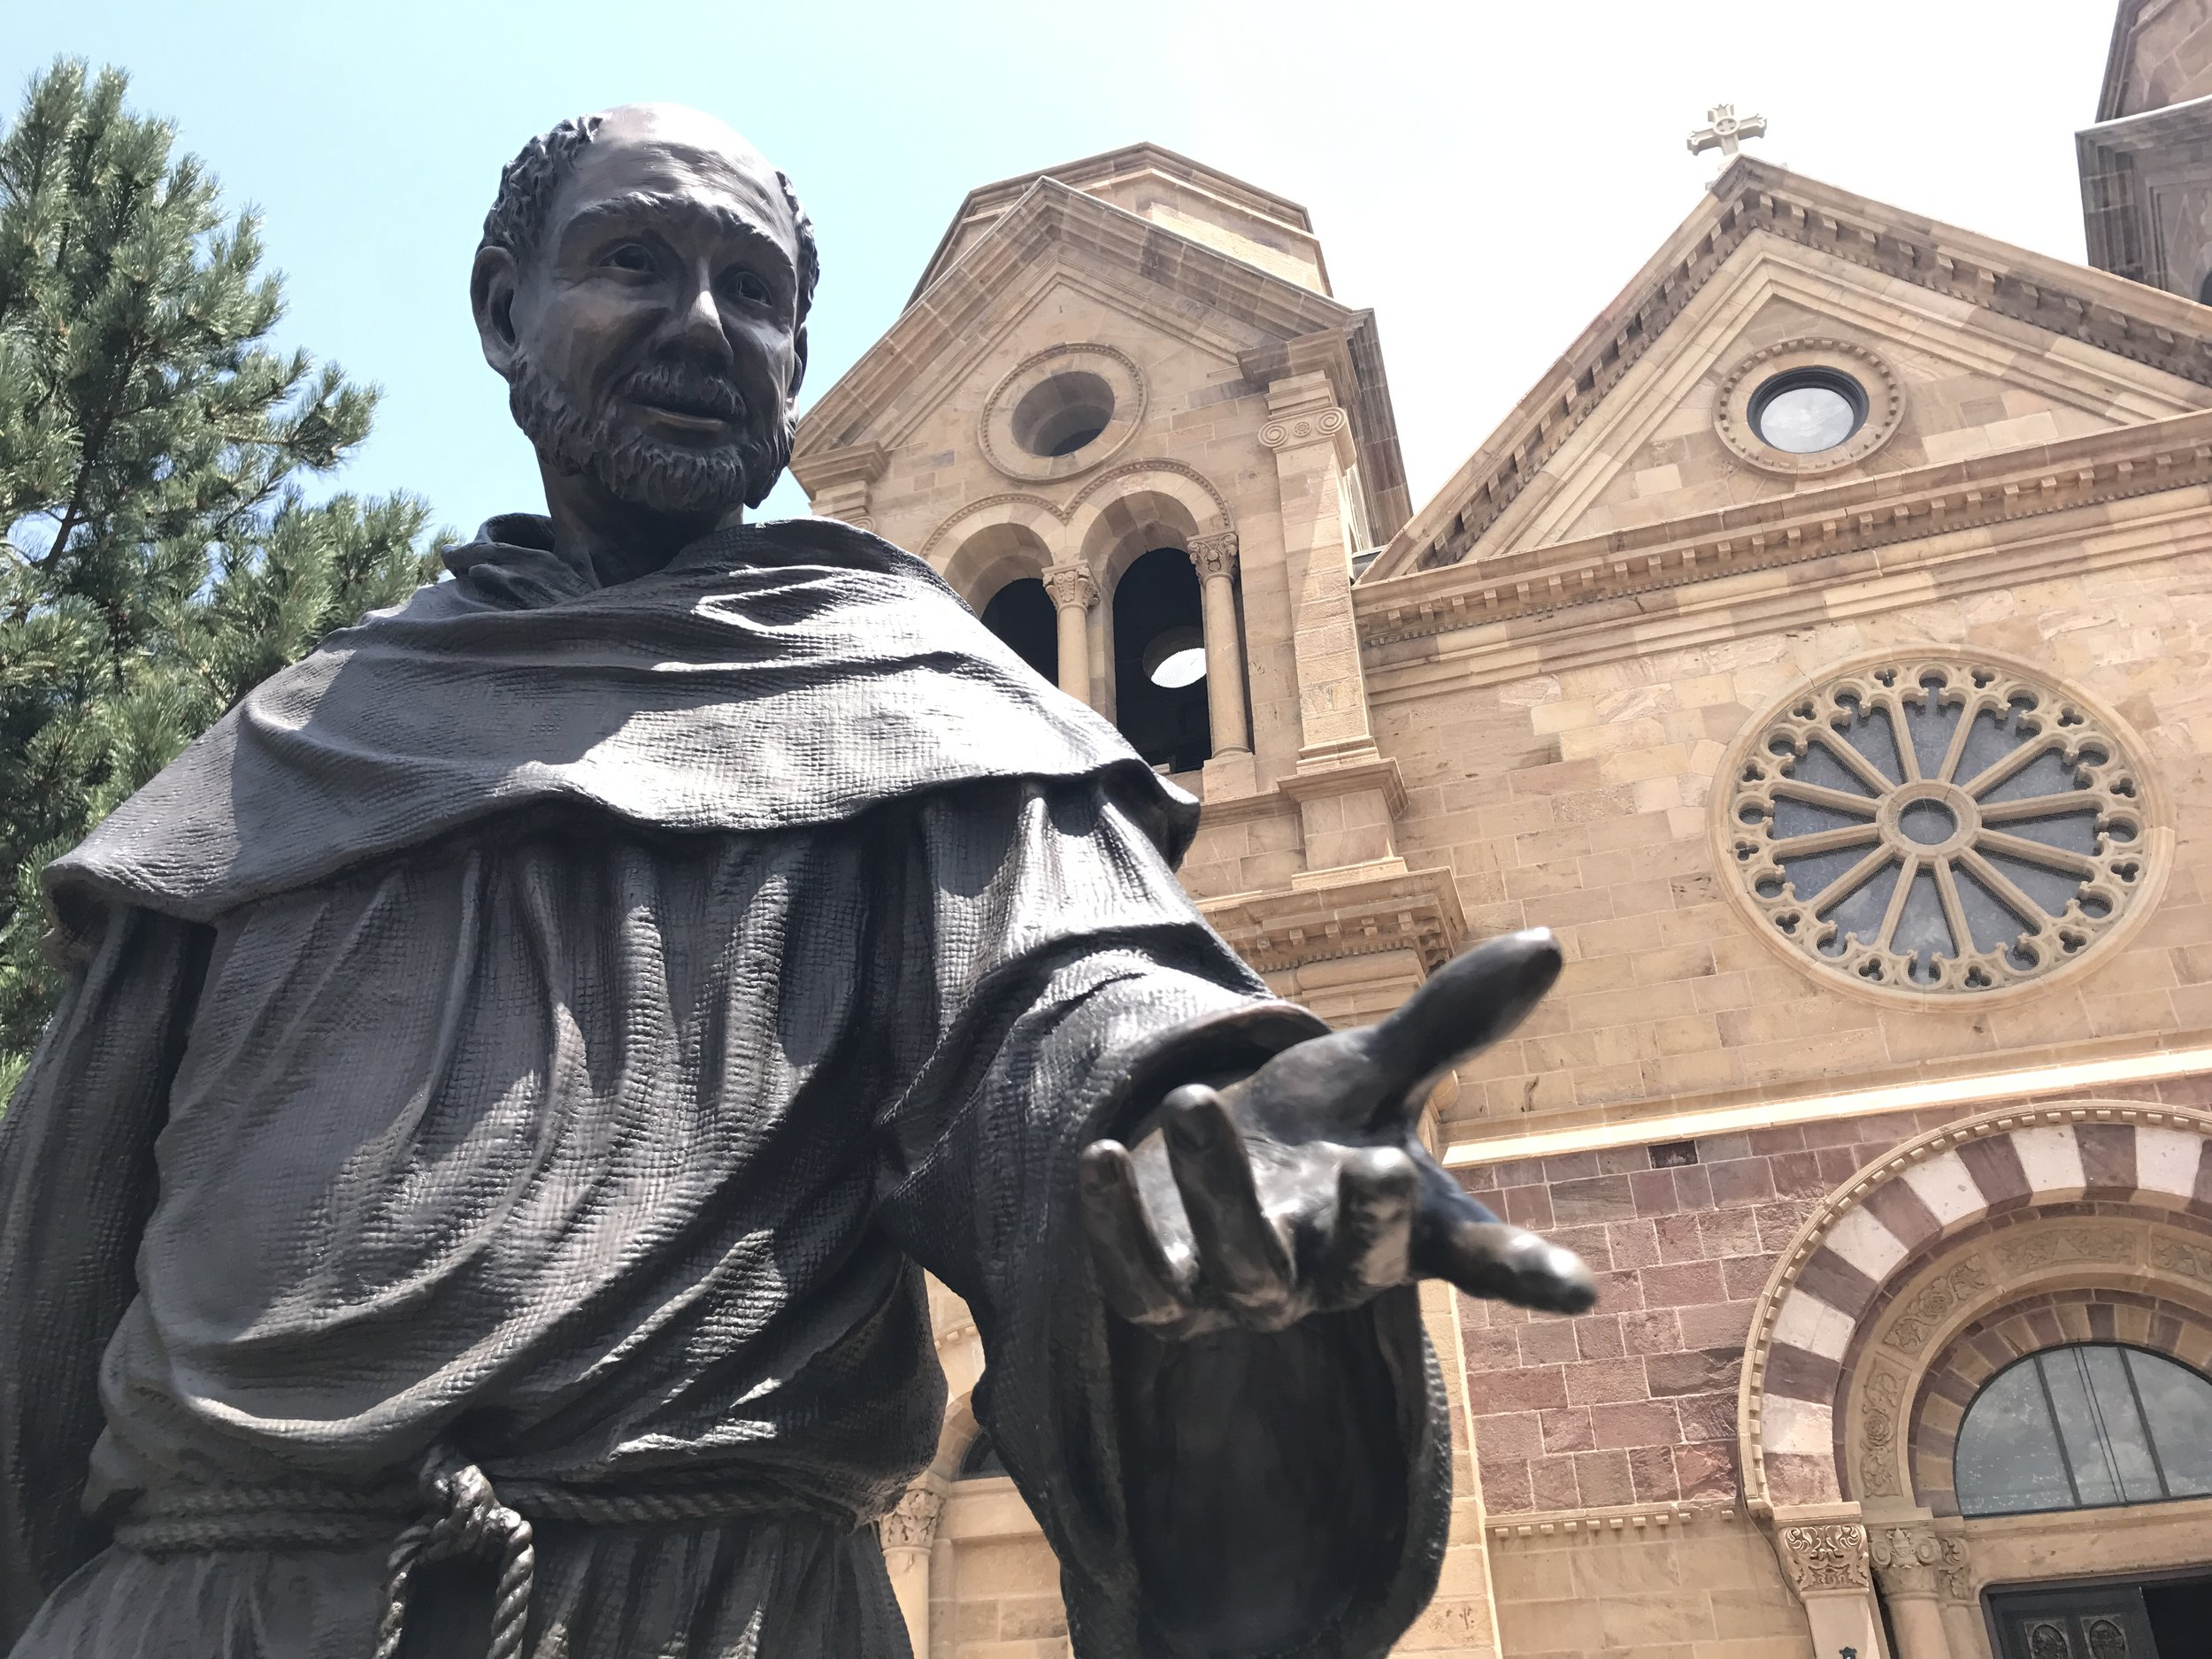 St. Francis of Assisi at the plaza